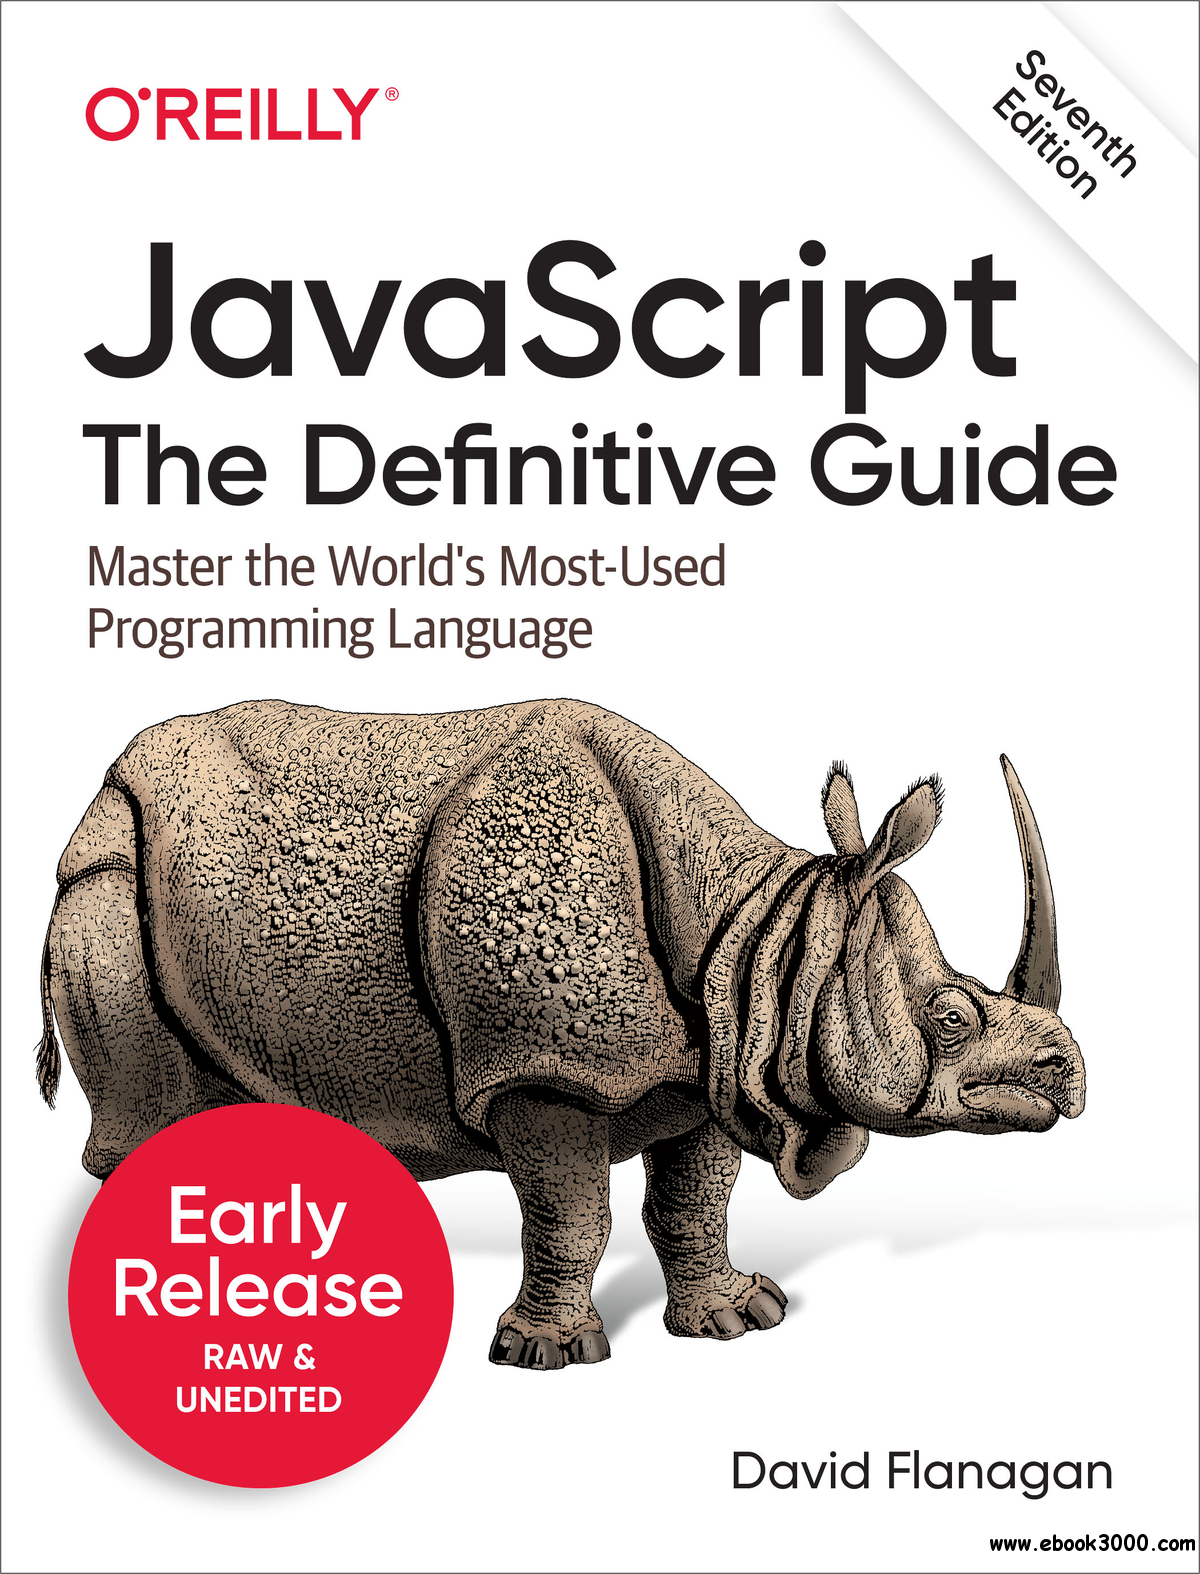 JavaScript: The Definitive Guide, 7th Edition [Early Release]